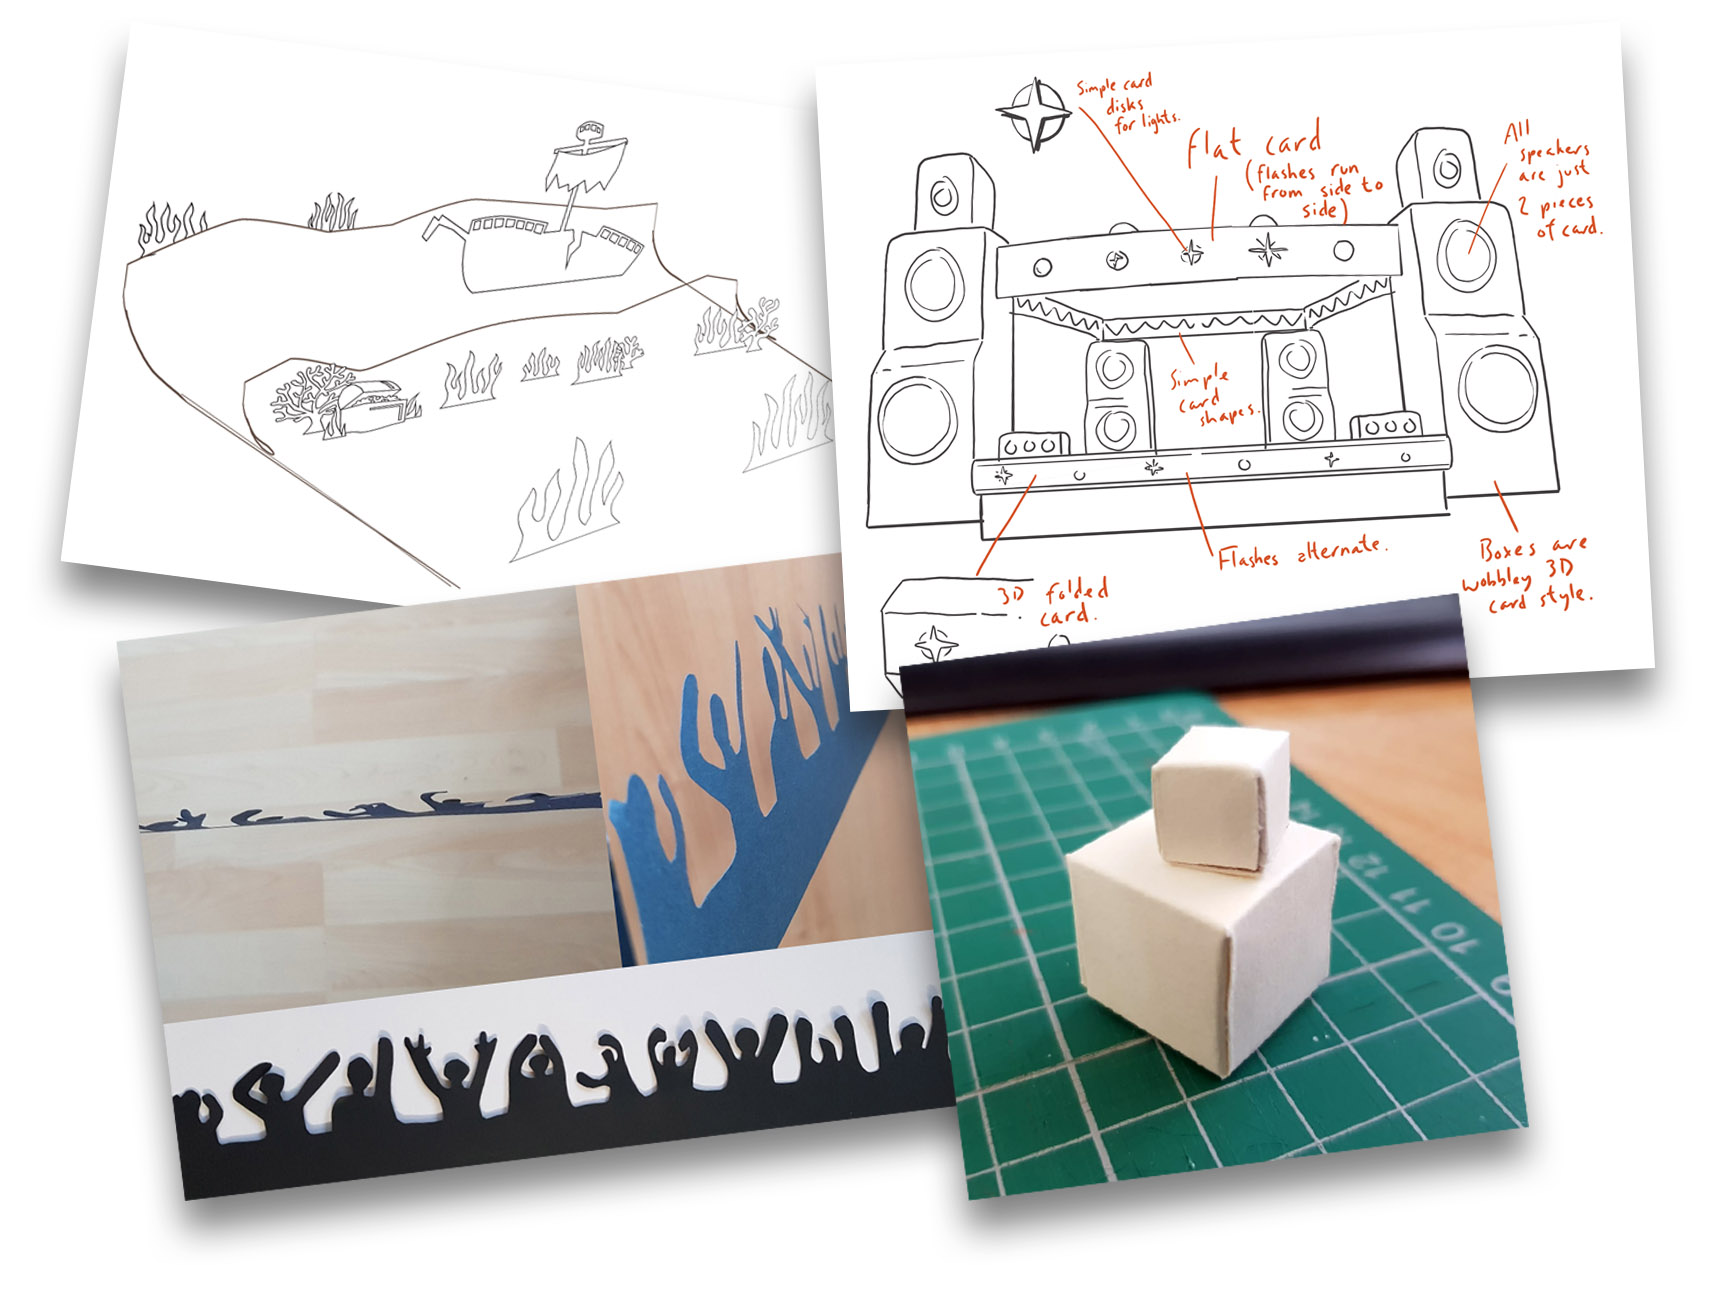 Sketches and paper models made to explore the style of the animations